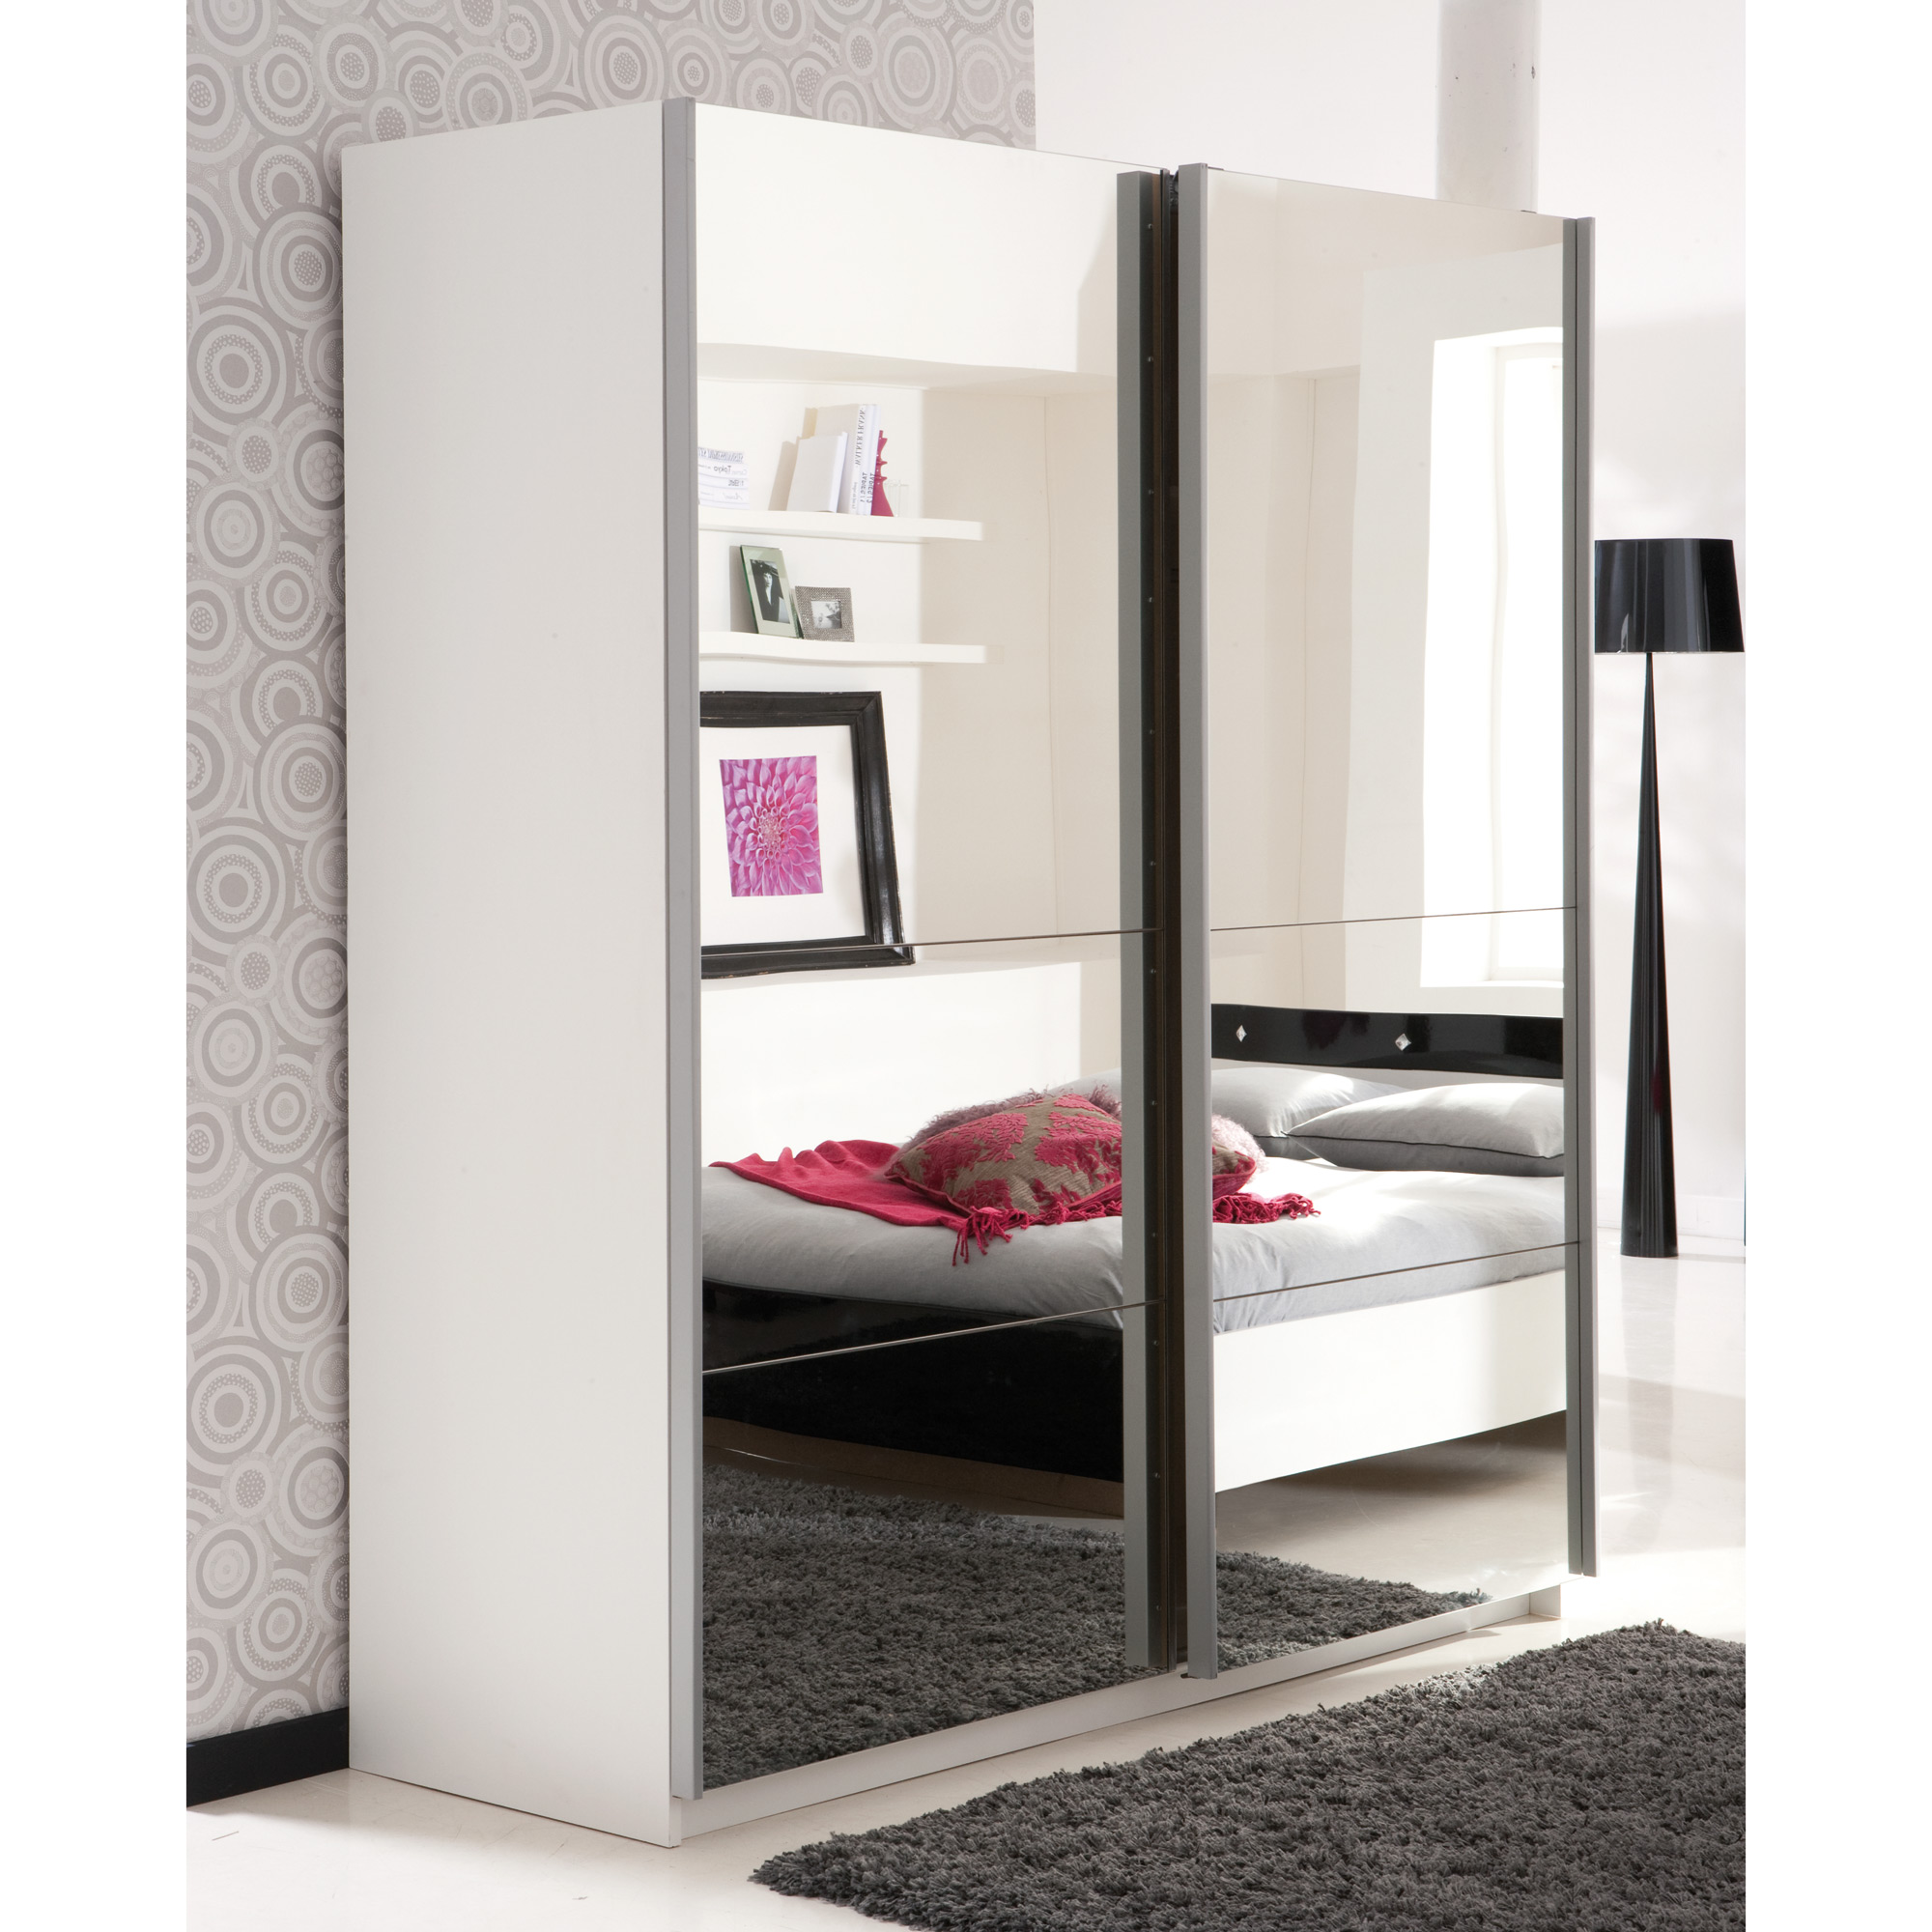 fabriquer un placard avec porte coulissante fashion designs. Black Bedroom Furniture Sets. Home Design Ideas